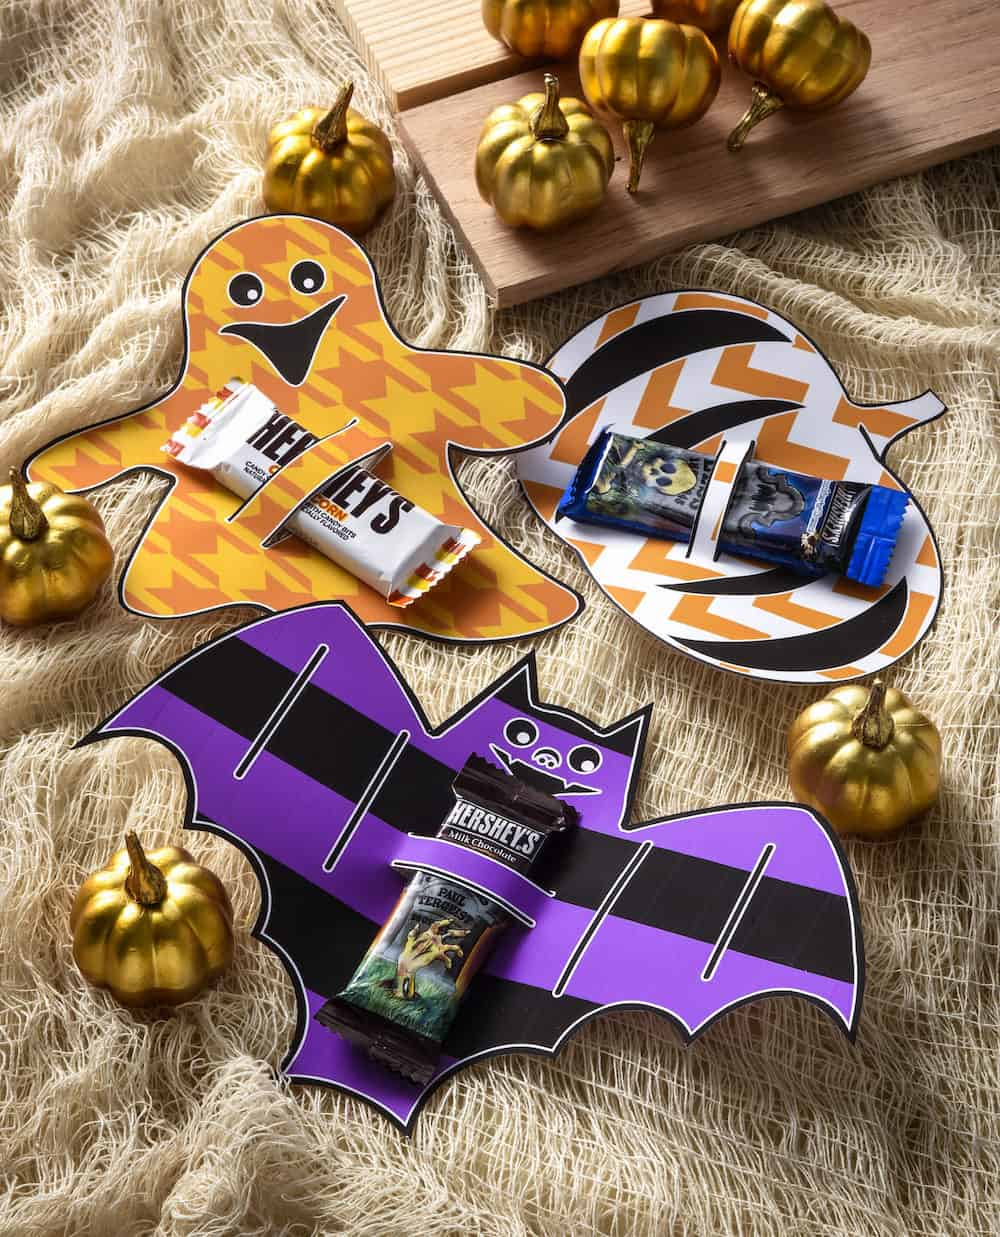 These Halloween candy bar wrappers are perfect for using as party favors, or for passing out to trick or treaters . . . and they're free!